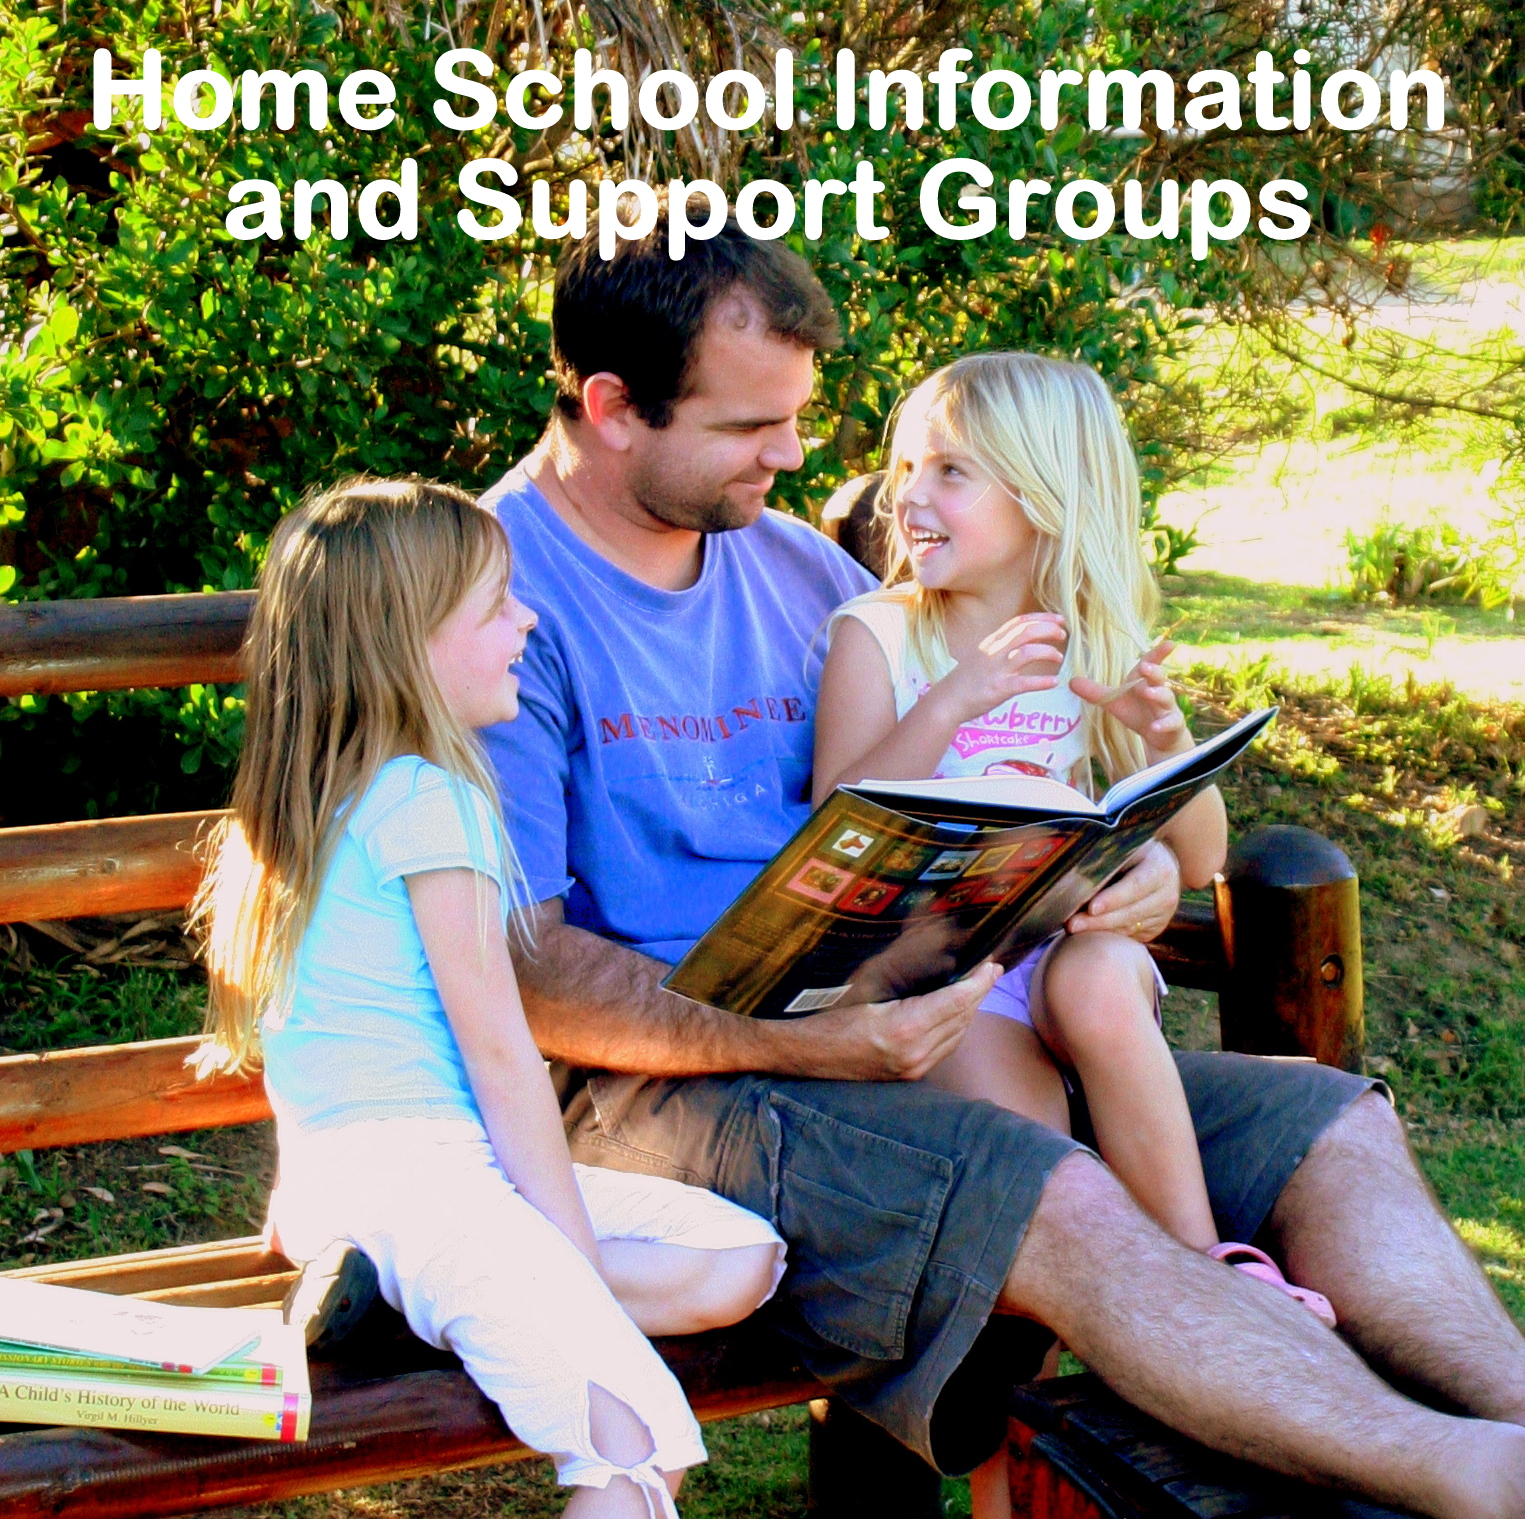 South African home school support groups and more: information page at Hayes Happenings.